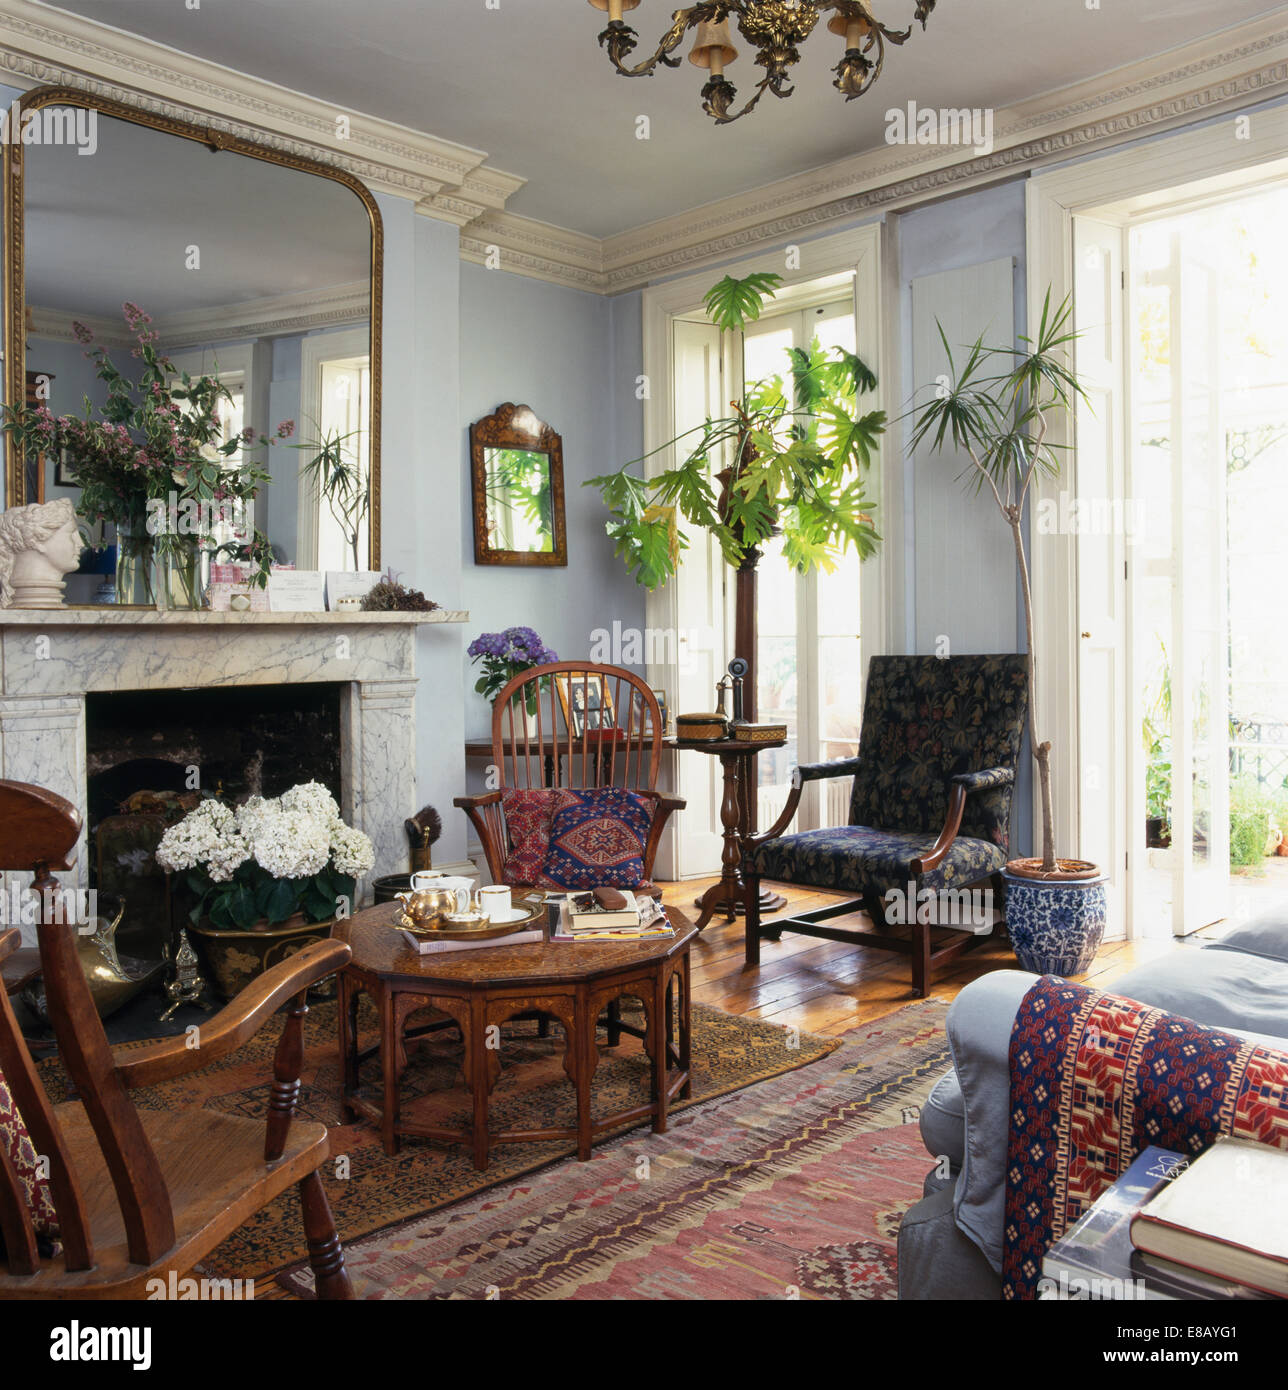 Large Mirror Above Marble Fireplace In Pale Grey Living Room With Green Houseplants